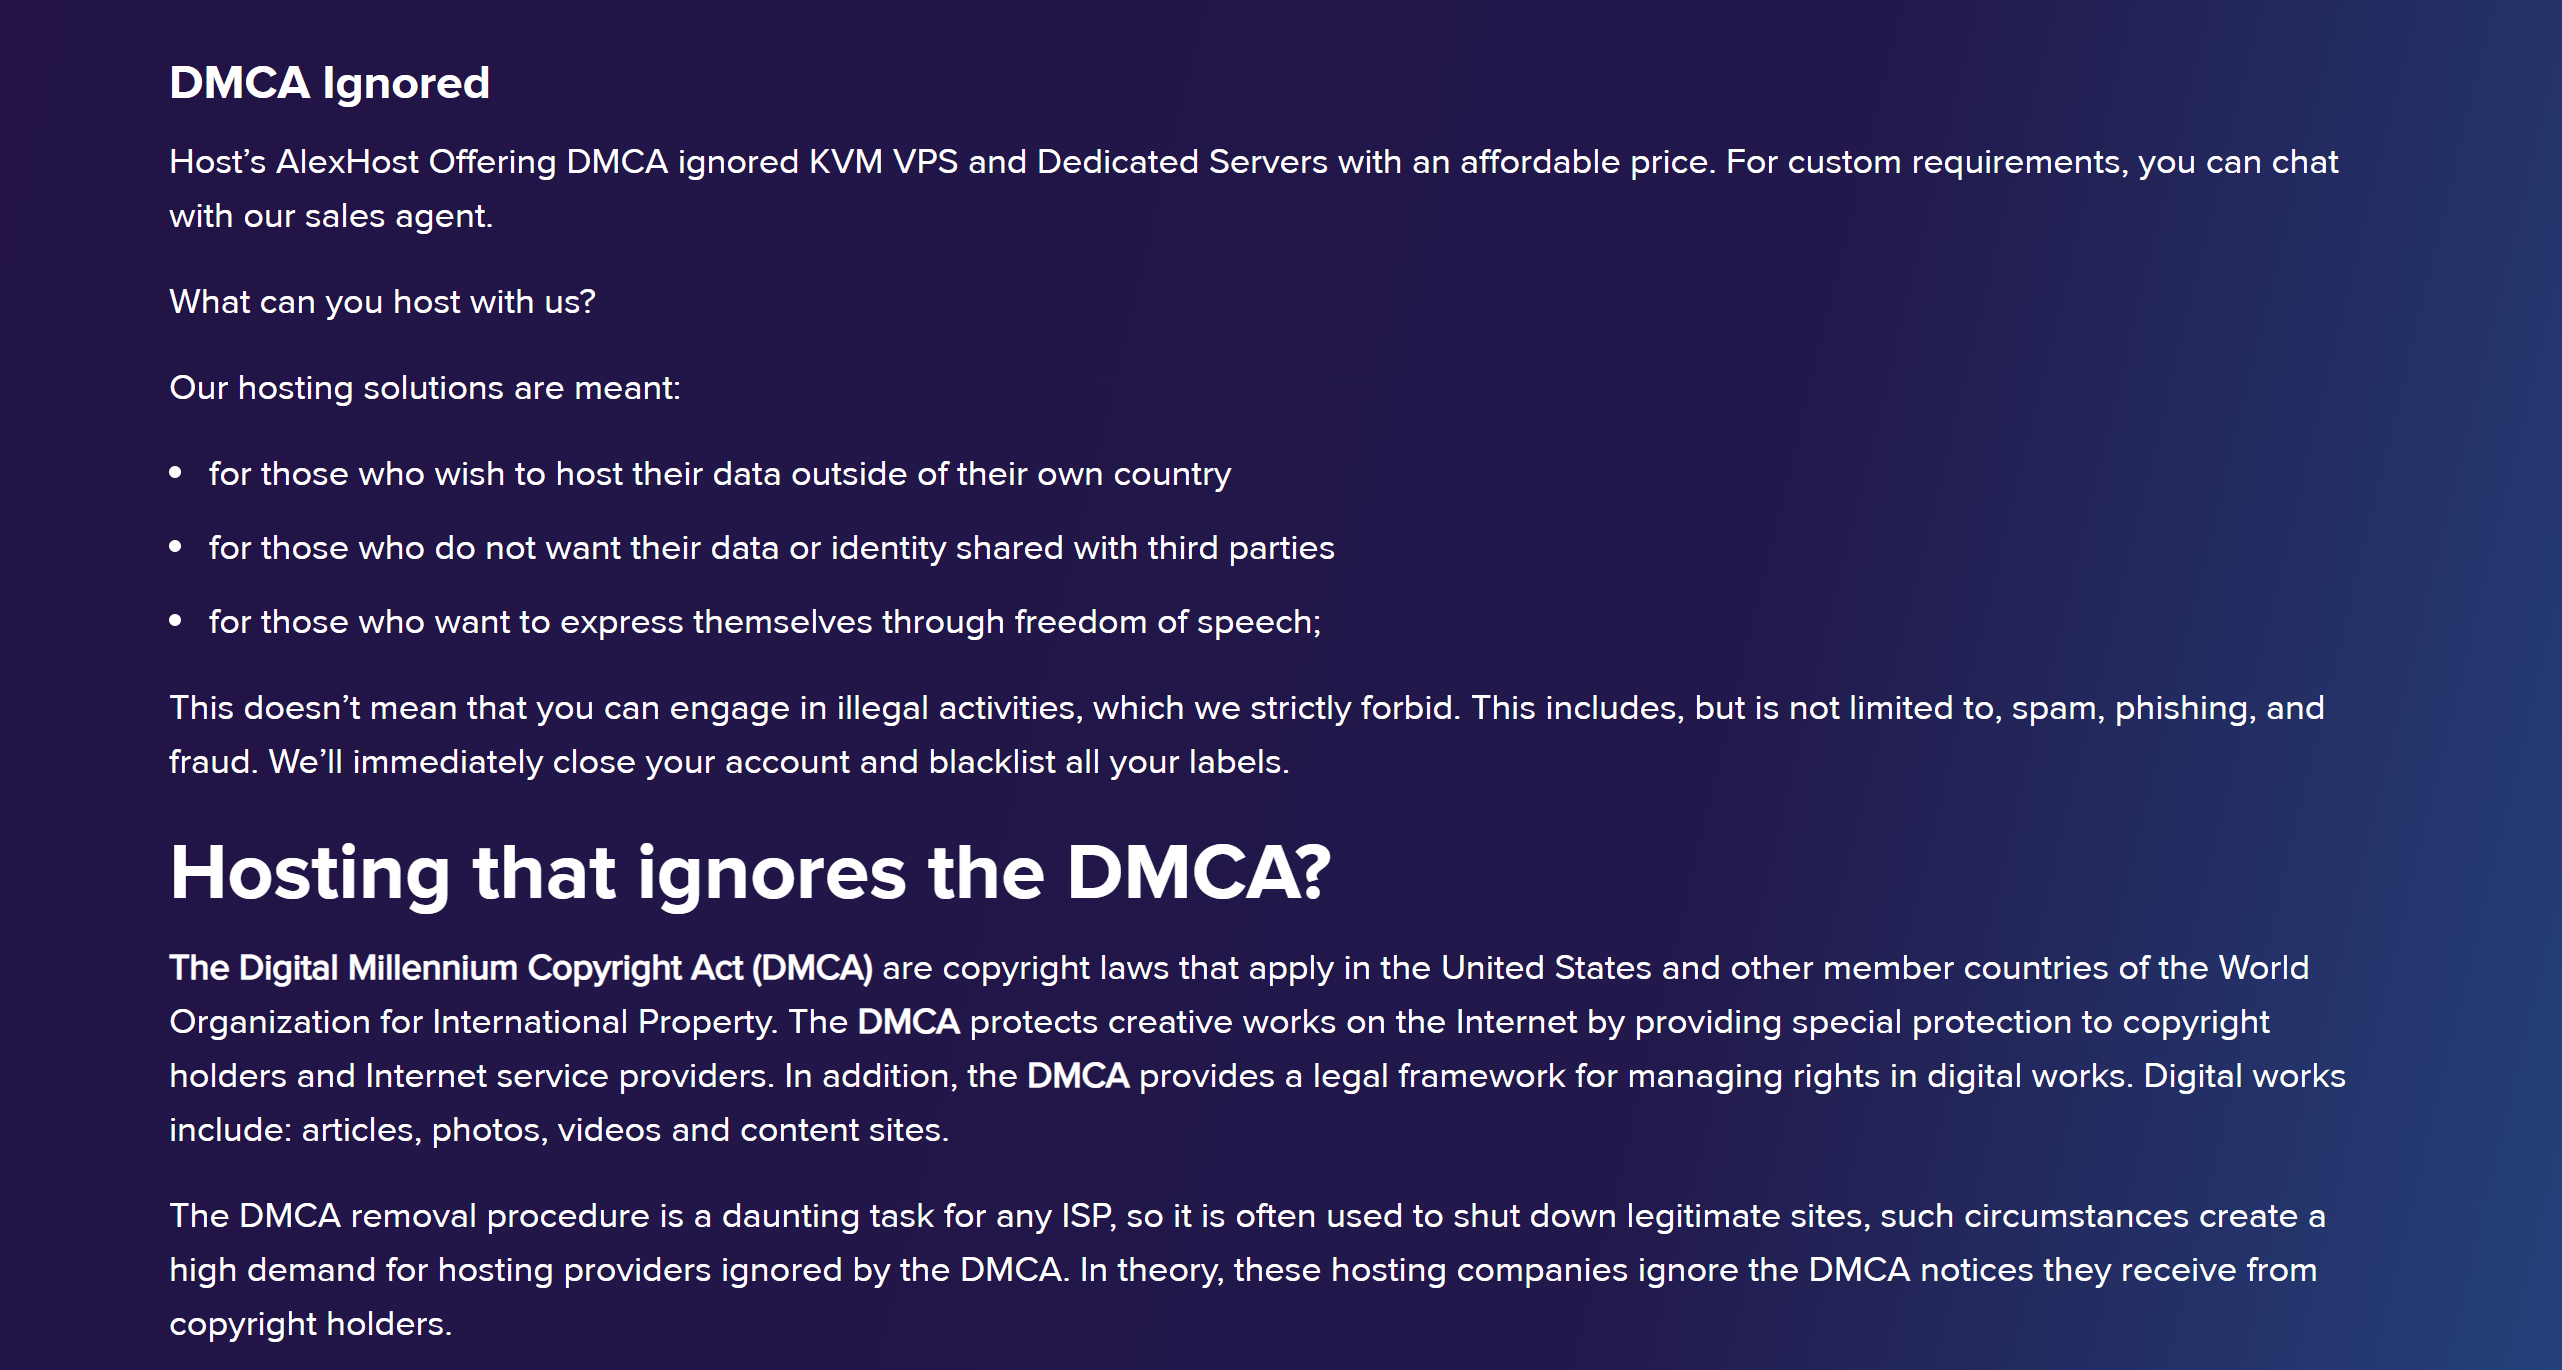 Best DMCA Ignored Hosting